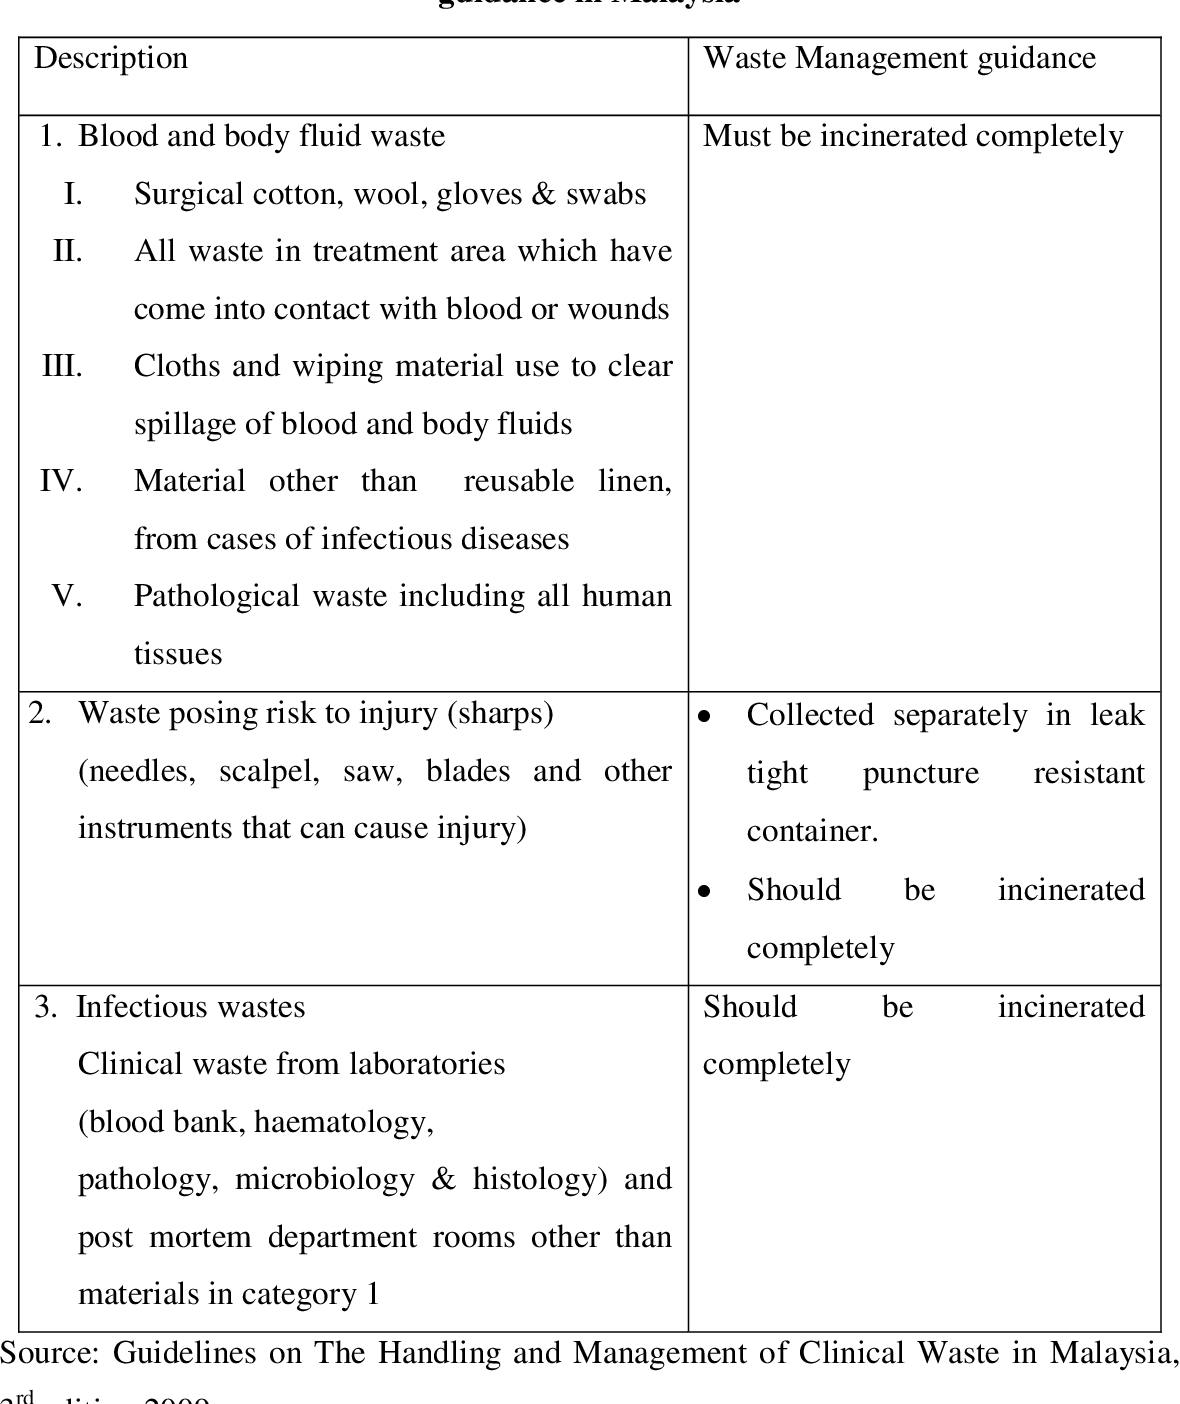 Pdf Hirarc Study For Occupational Safety And Health Evaluation Of Clinical Waste Handlers At A Hospital And An Incineration Plant Kauselya Muniandy Semantic Scholar